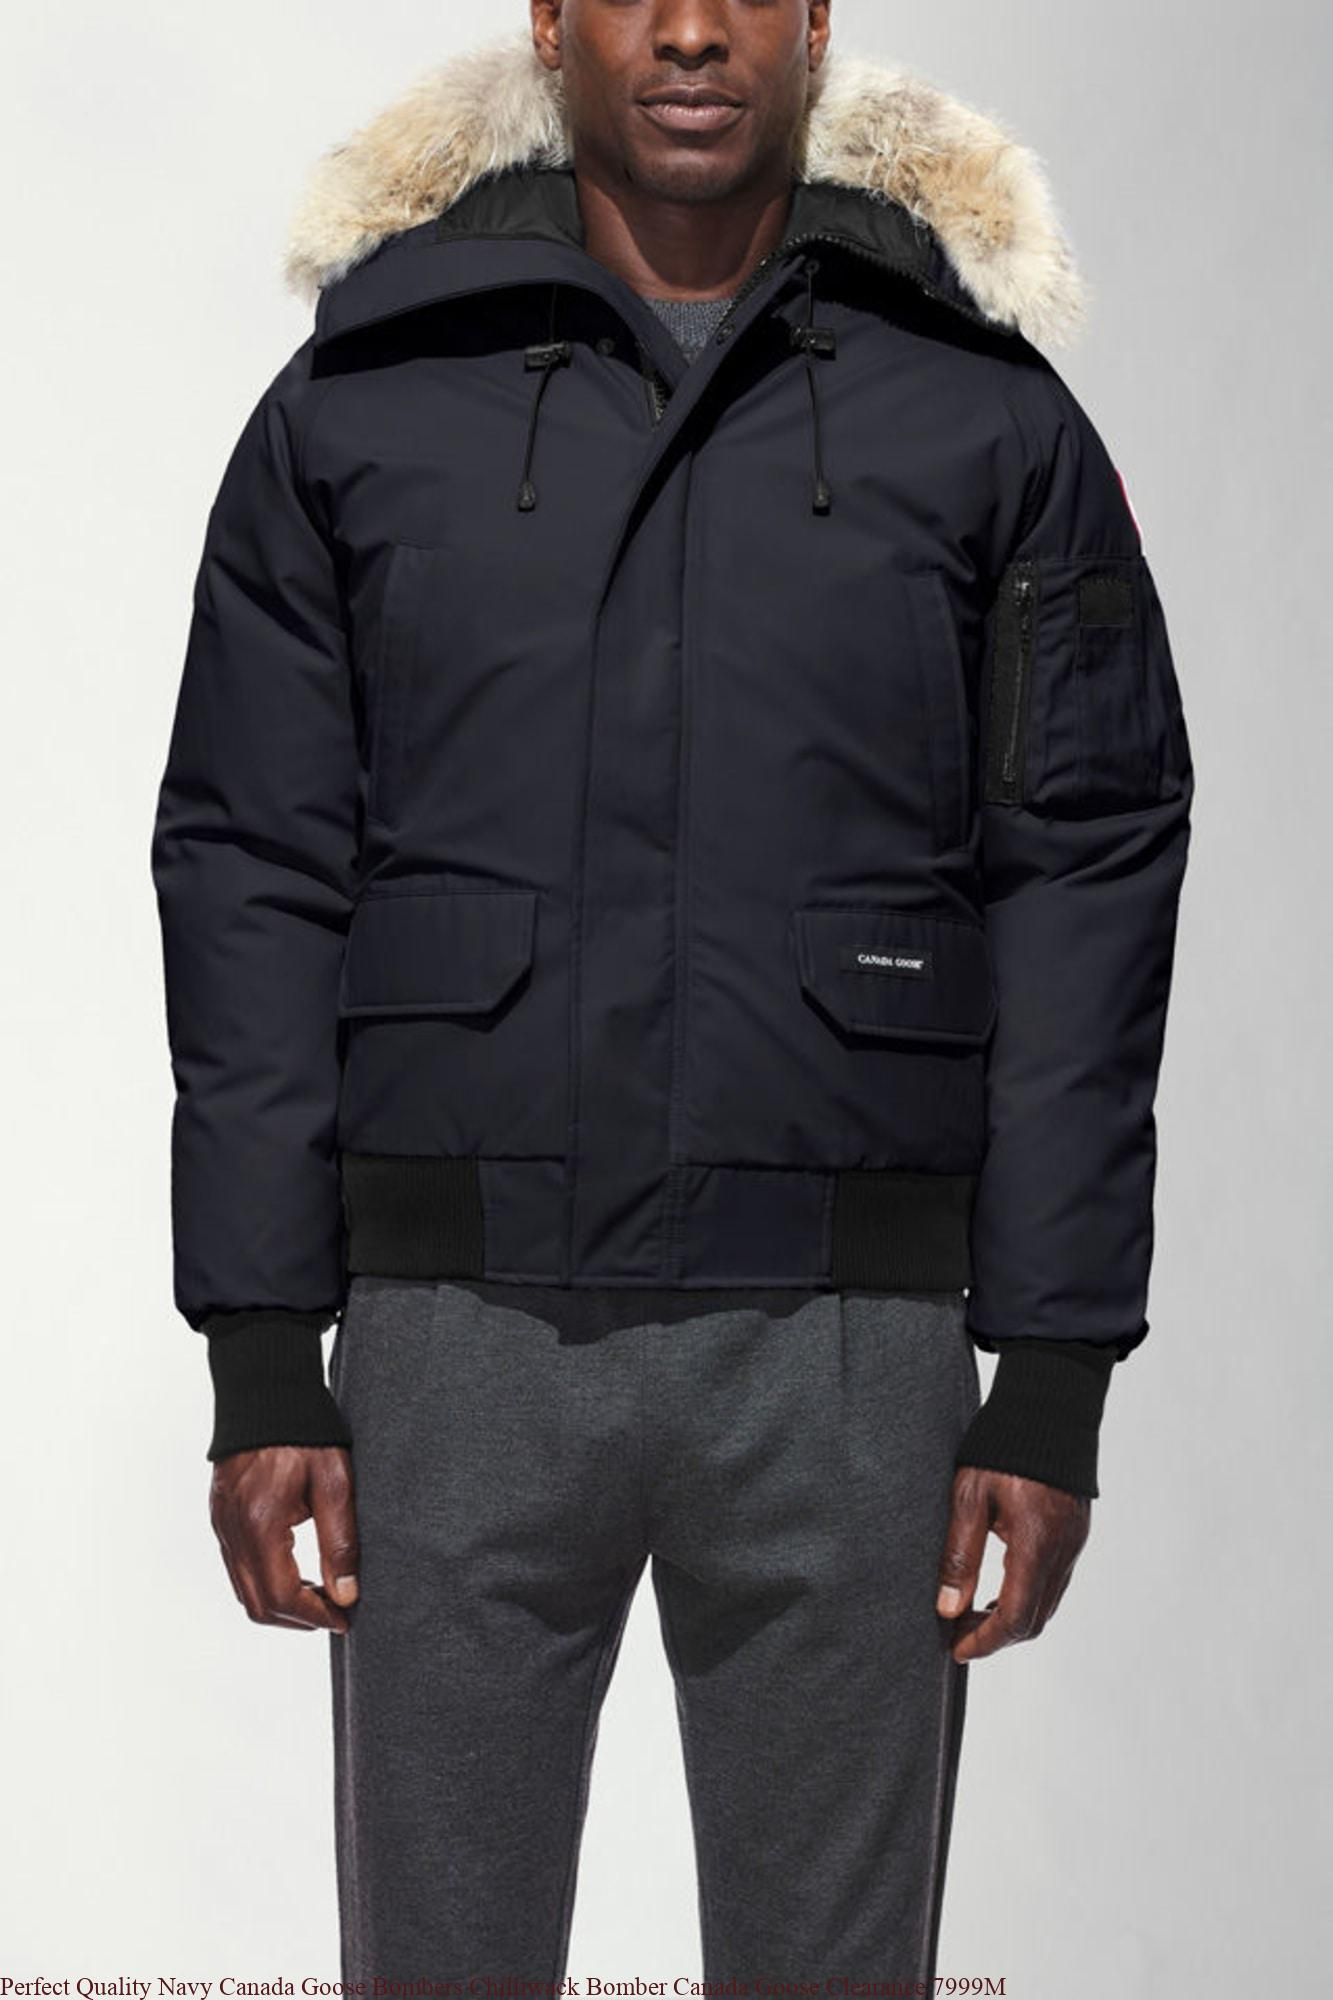 Perfect Quality Navy Canada Goose Bombers Chilliwack Bomber Canada Goose Clearance 7999m Uk Cheap Canada Goose Outlet Jackets On Sale